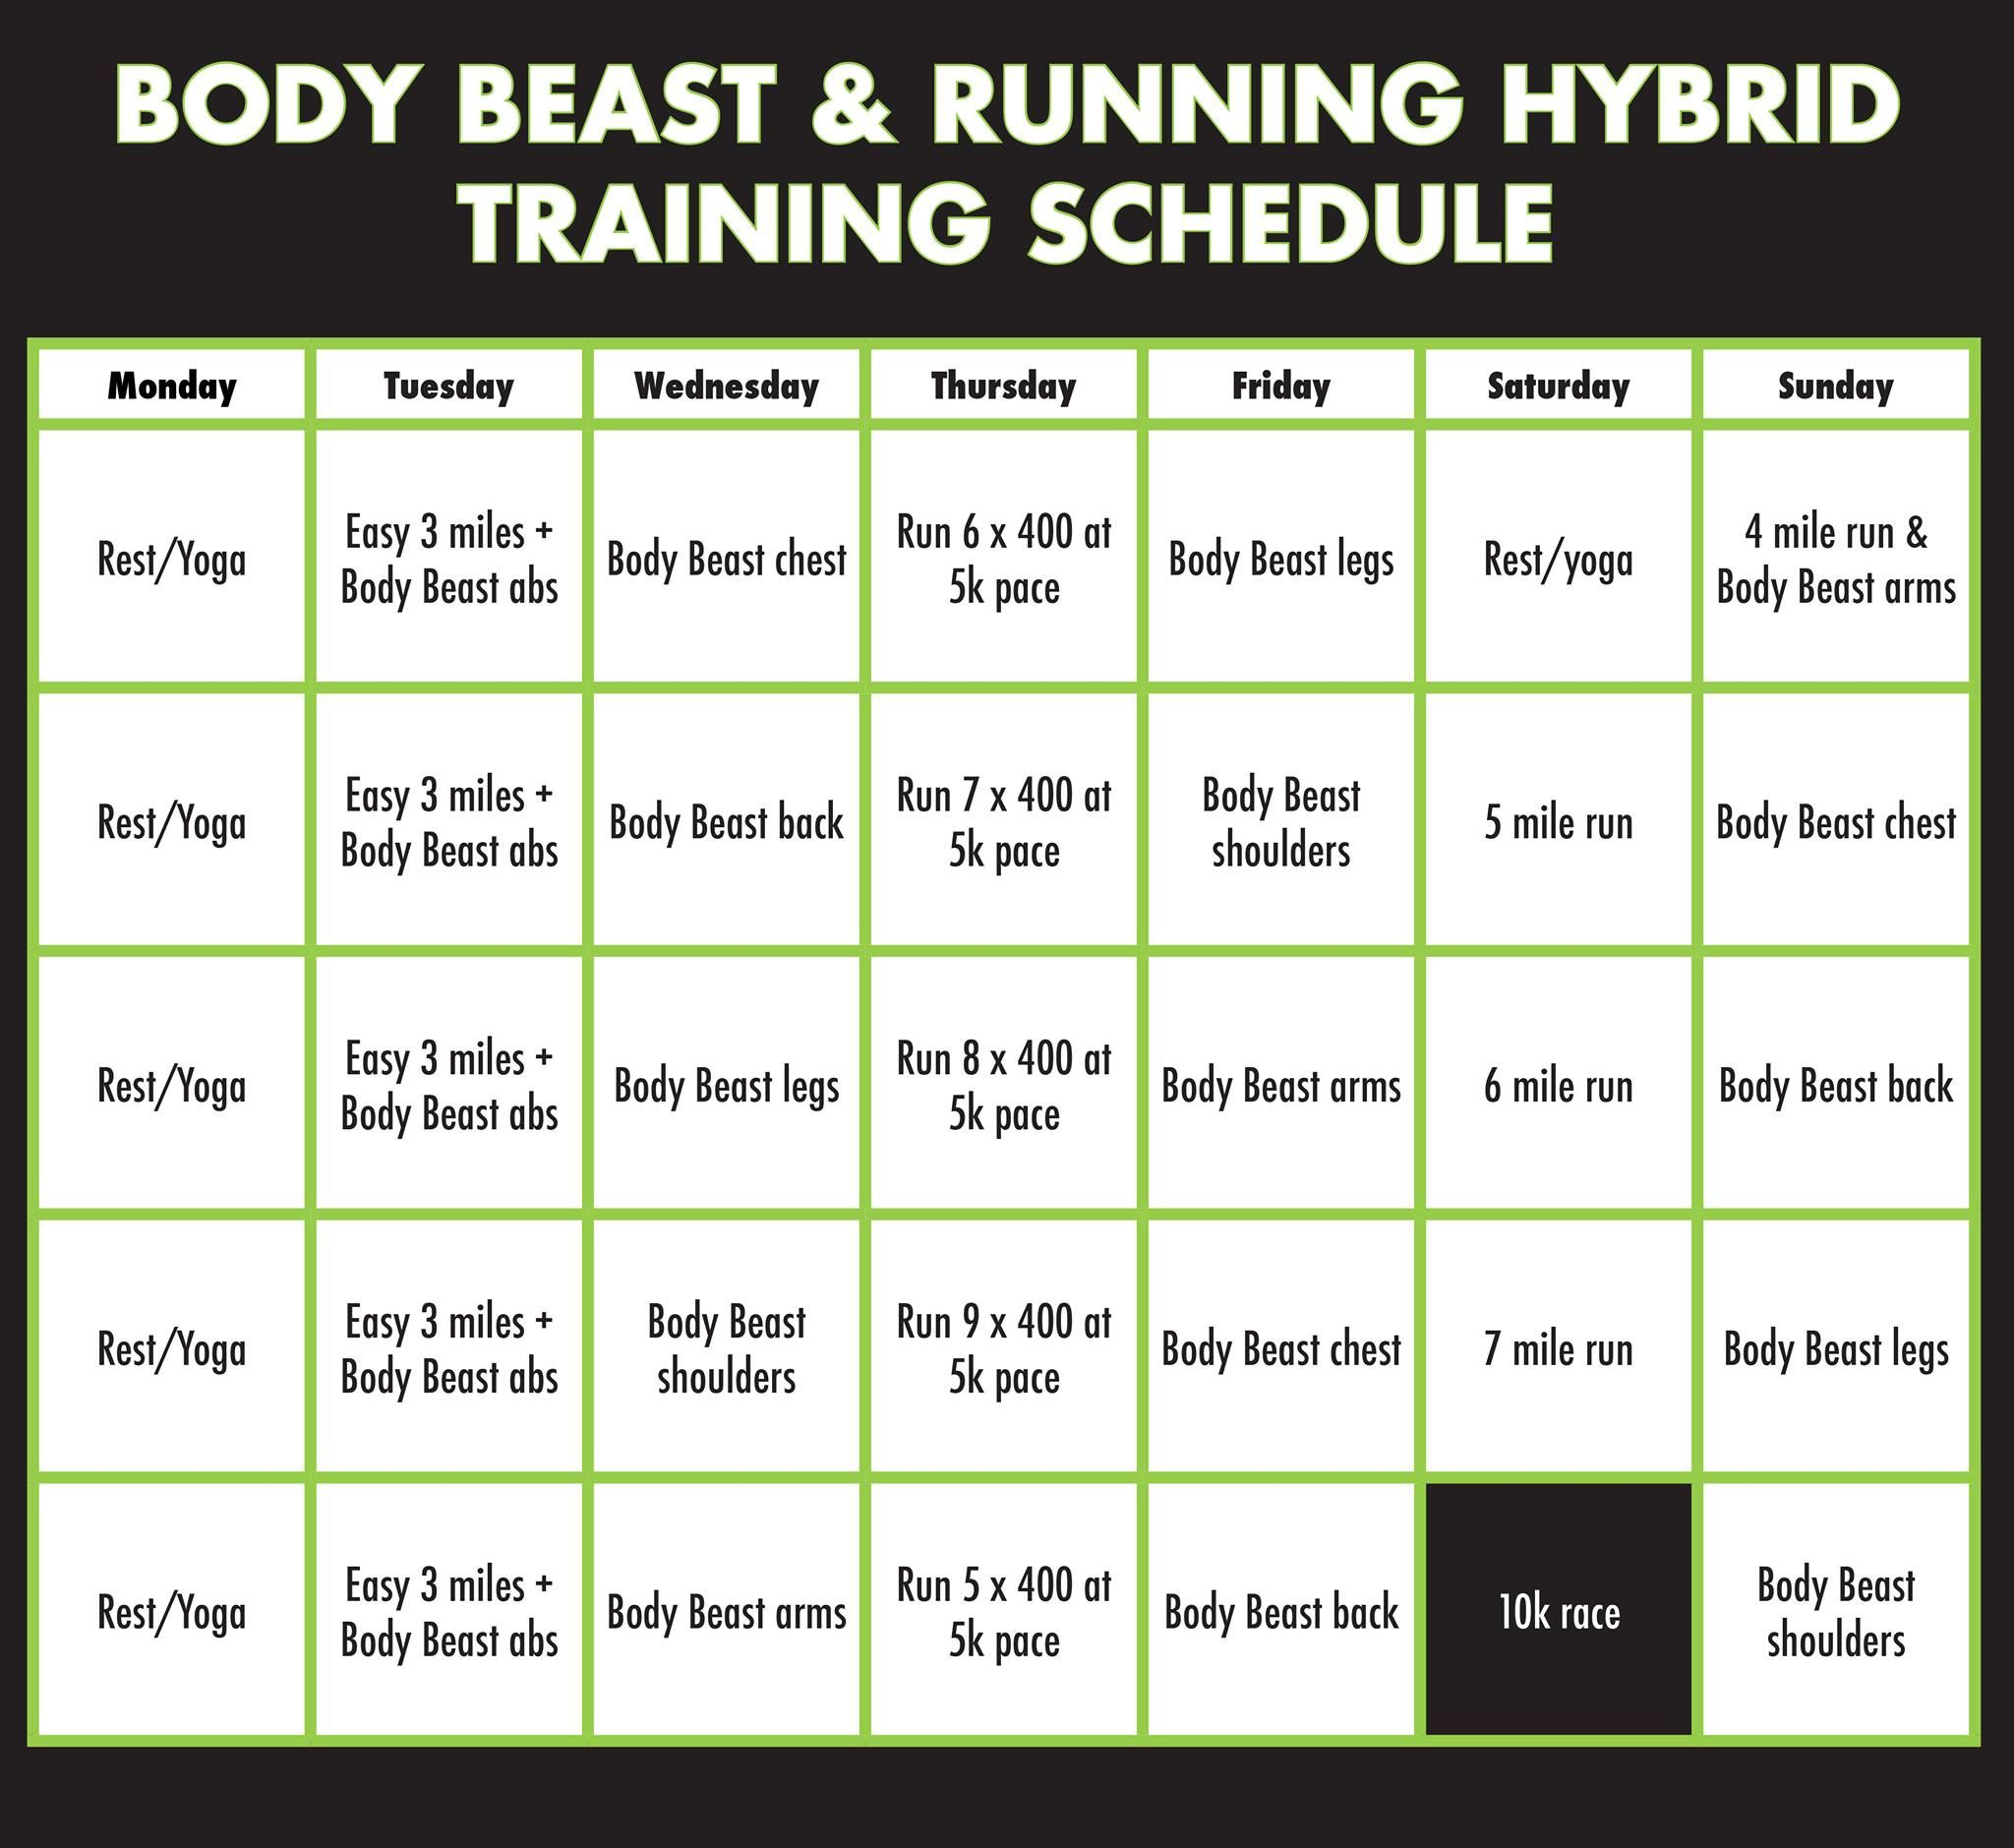 Body Beast Running Hybrid Training Schedule